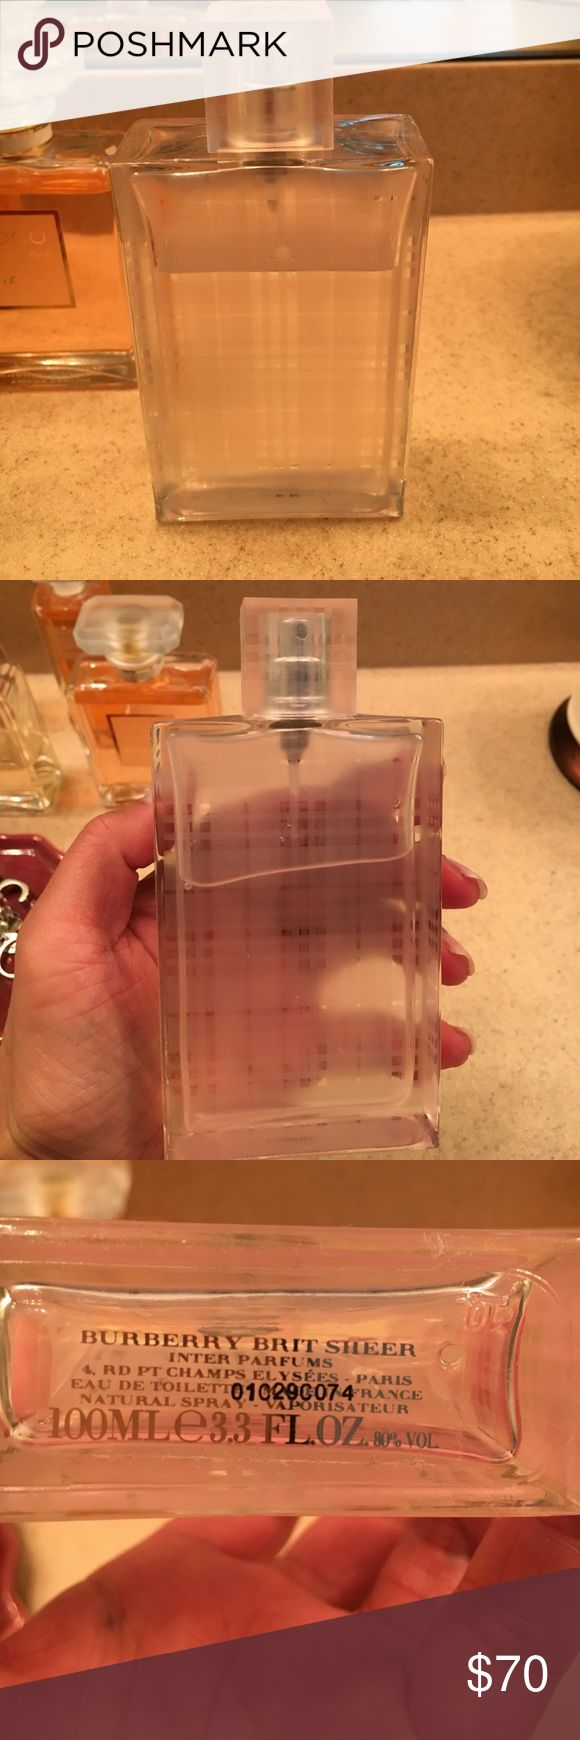 Burberry Brit Sheer eau de toilette 100 ml Beautiful light scent from Burberry fragrances- Brit Sheer eau de toilette 100ml 3.3fl oz. bottle is 3/4 full. Authentic from the Burberry Chicago store. Great buy! Burberry Other